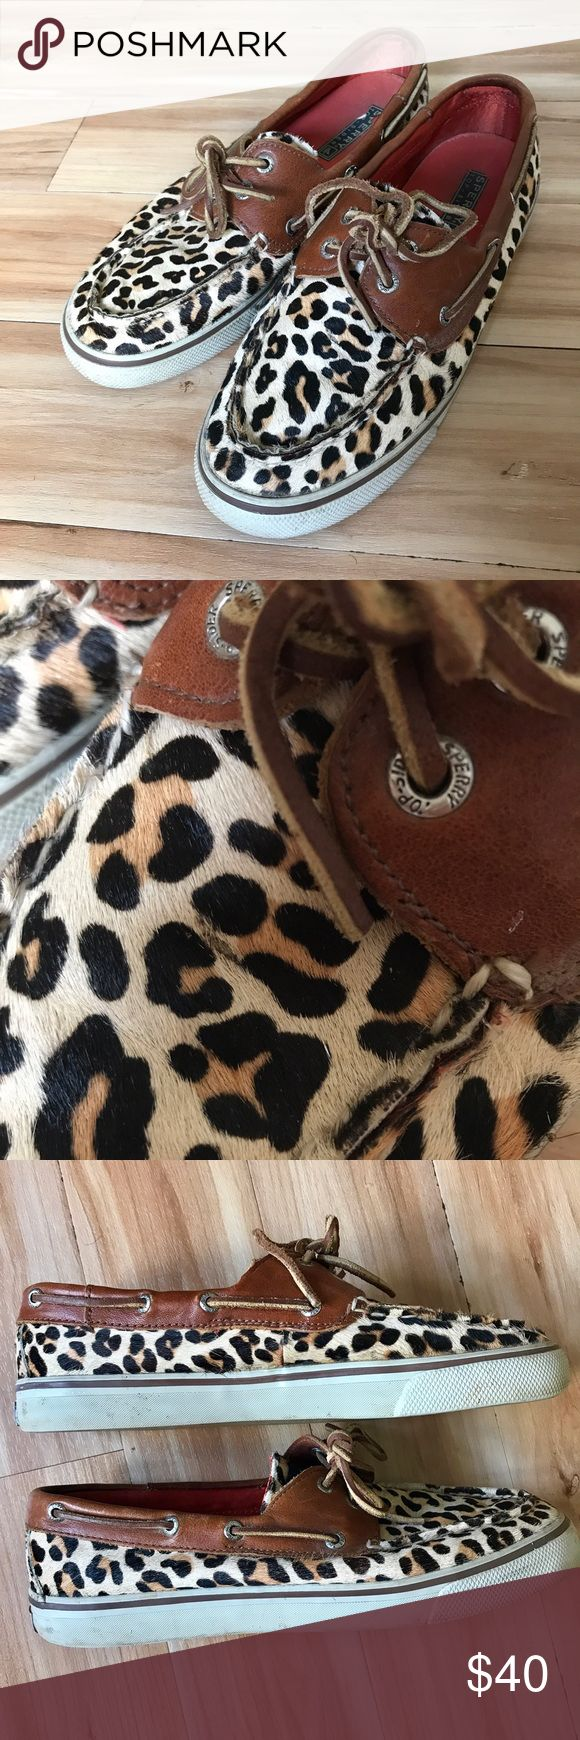 Bahamas pony hair leopard Sperry topsiders Real calfskin leather upper in leopard print with brown leather detailing and laces. In good condition, has a minor mark on the front of shoe but is pictured and not noticeable. Sperry Top-Sider Shoes Flats & Loafers